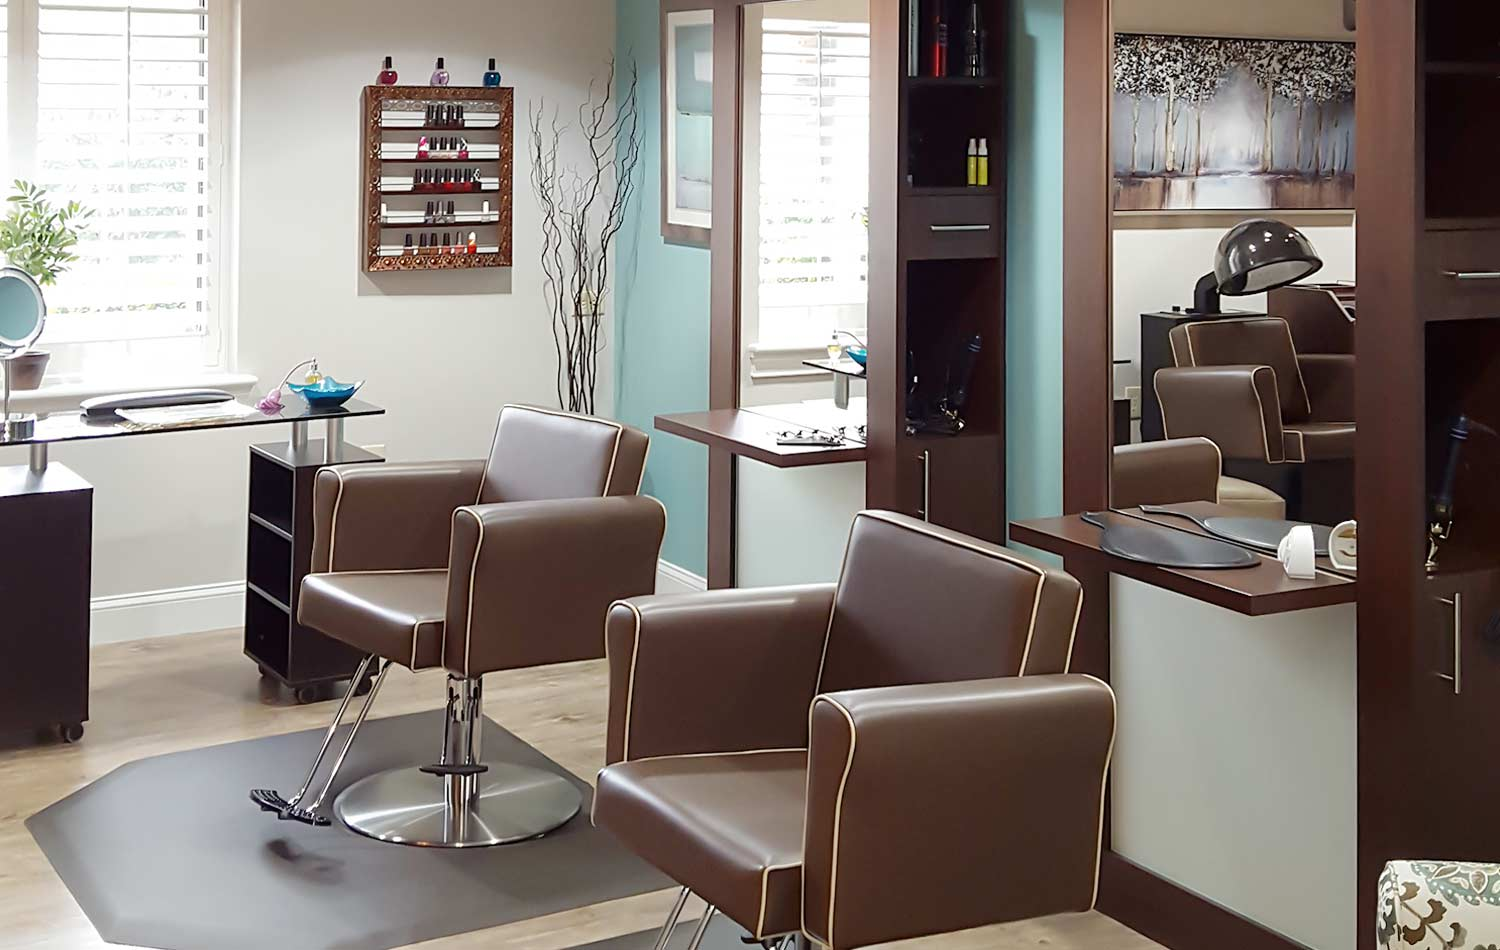 Salon Equipment For Seniors Nursing Homes Assisted Living